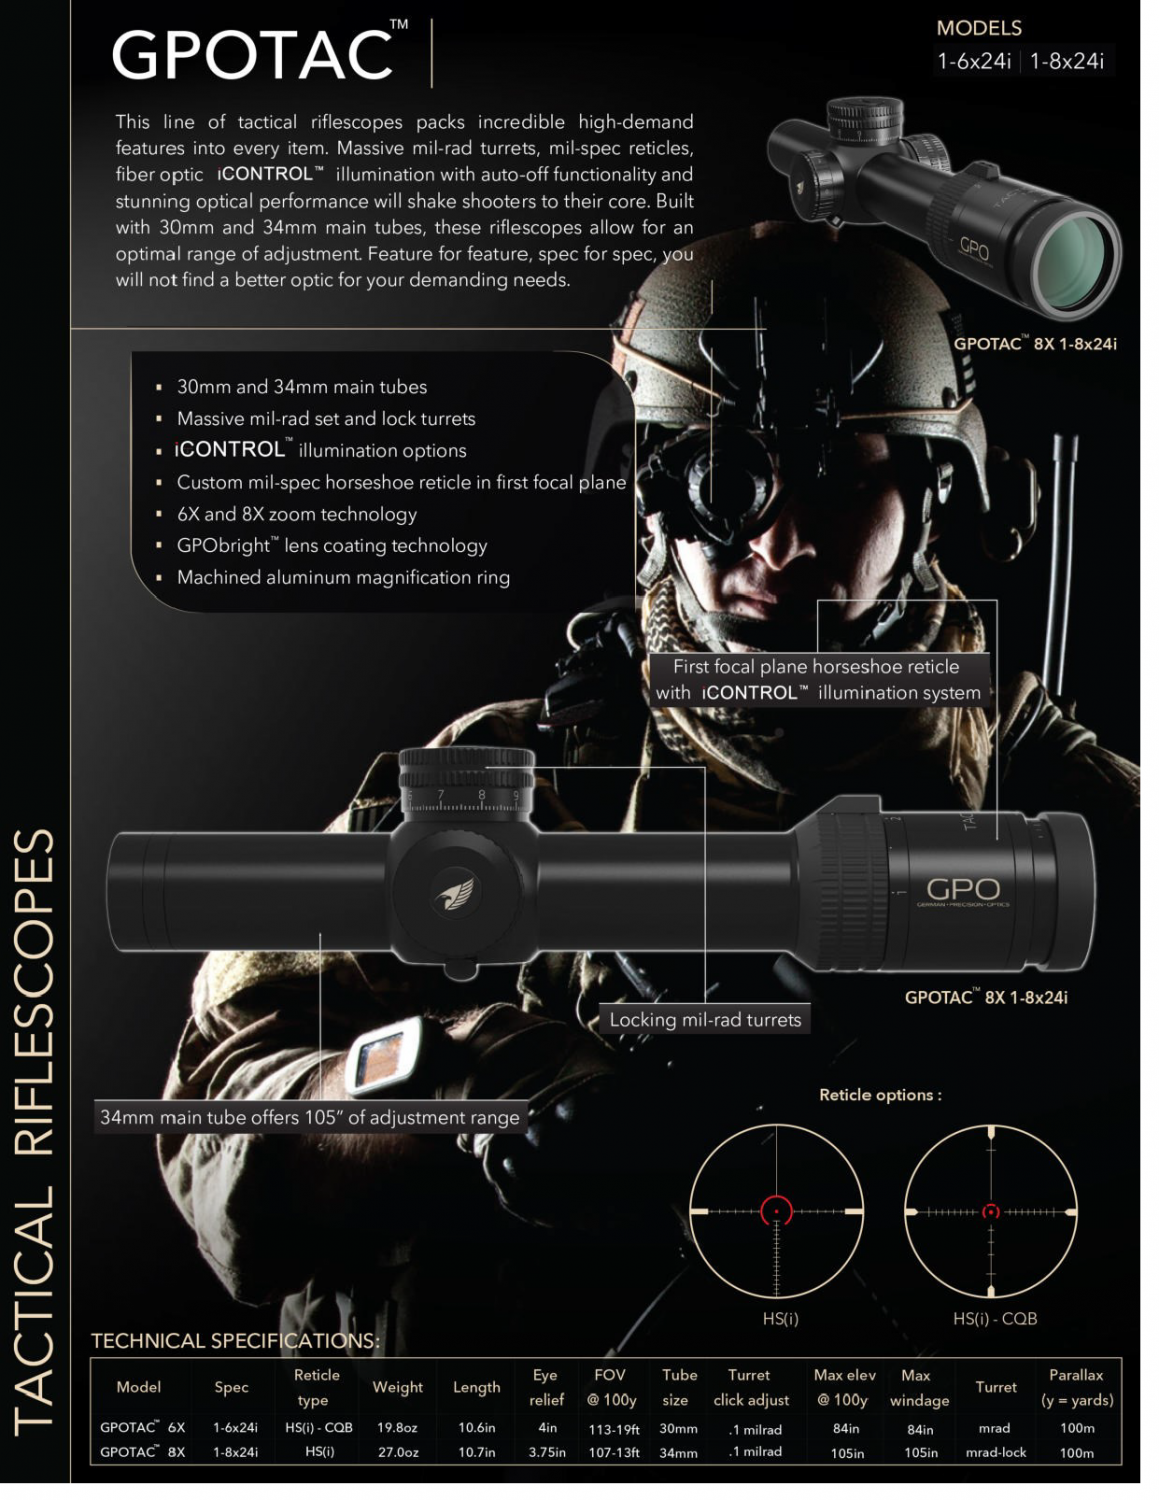 GPO seeks to be a player in the military/tactical optics space as well.